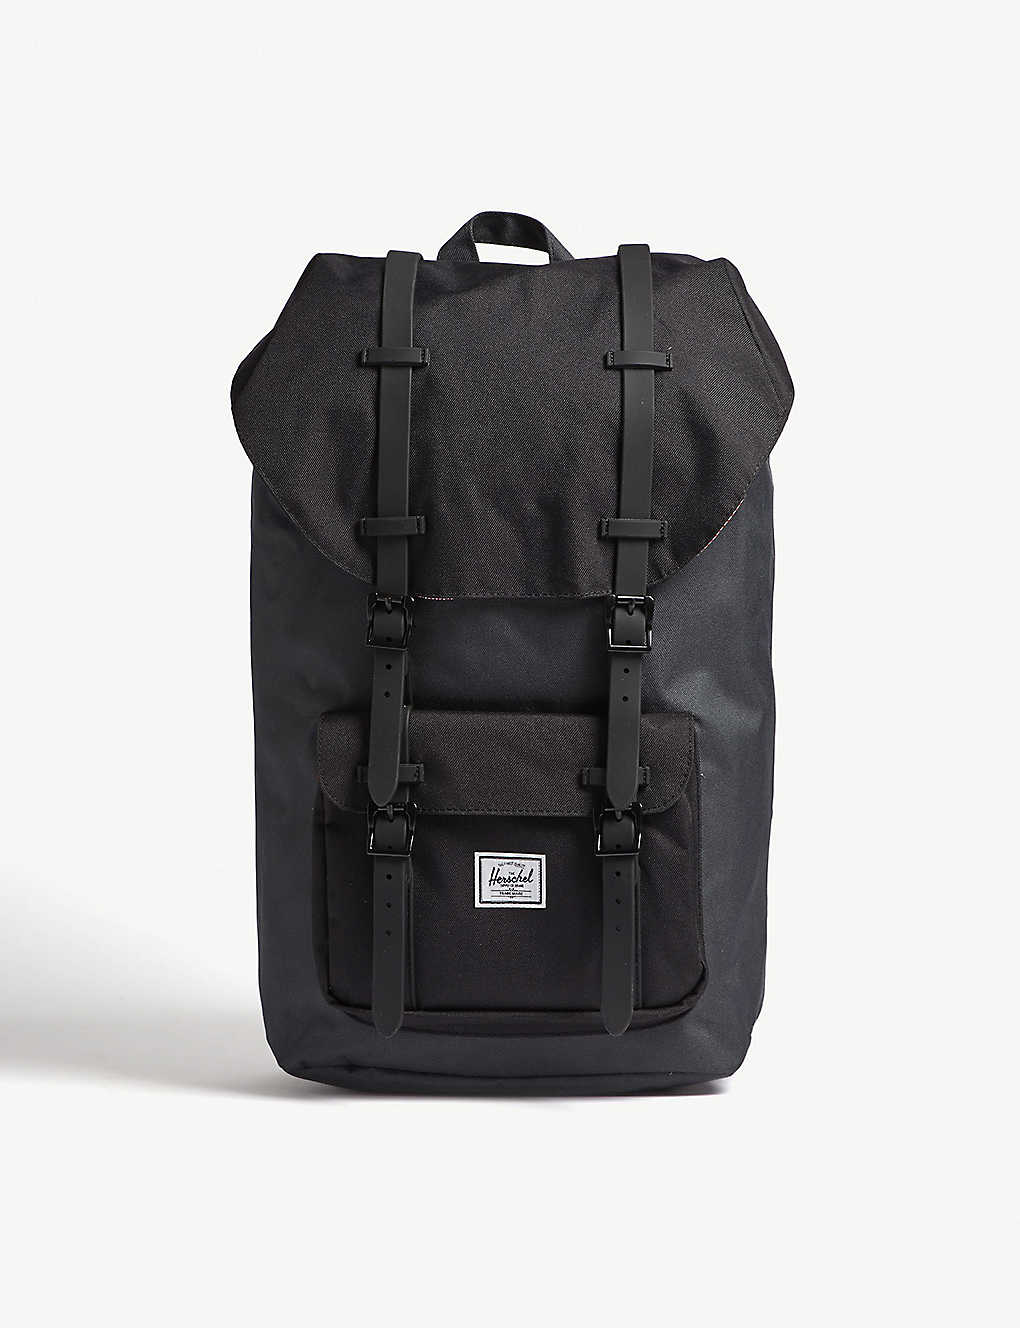 HERSCHEL SUPPLY CO - Little America backpack  b9c7dc9a30568